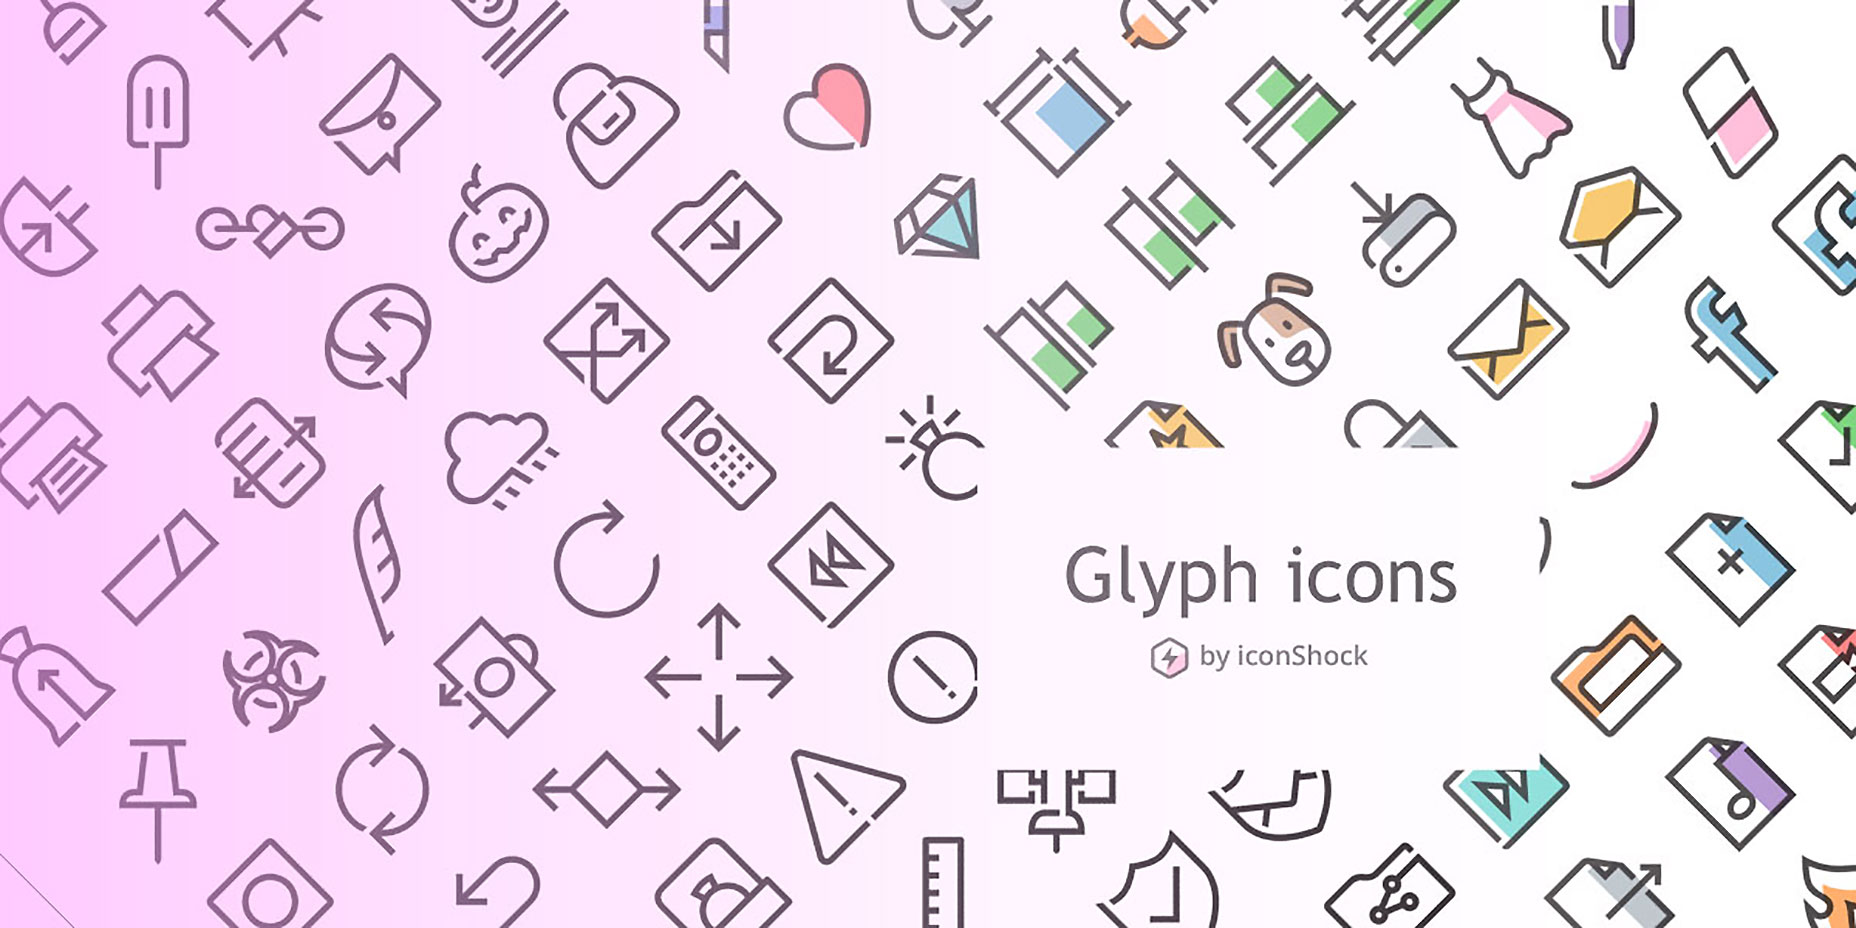 is-glyph-icons-1900x950